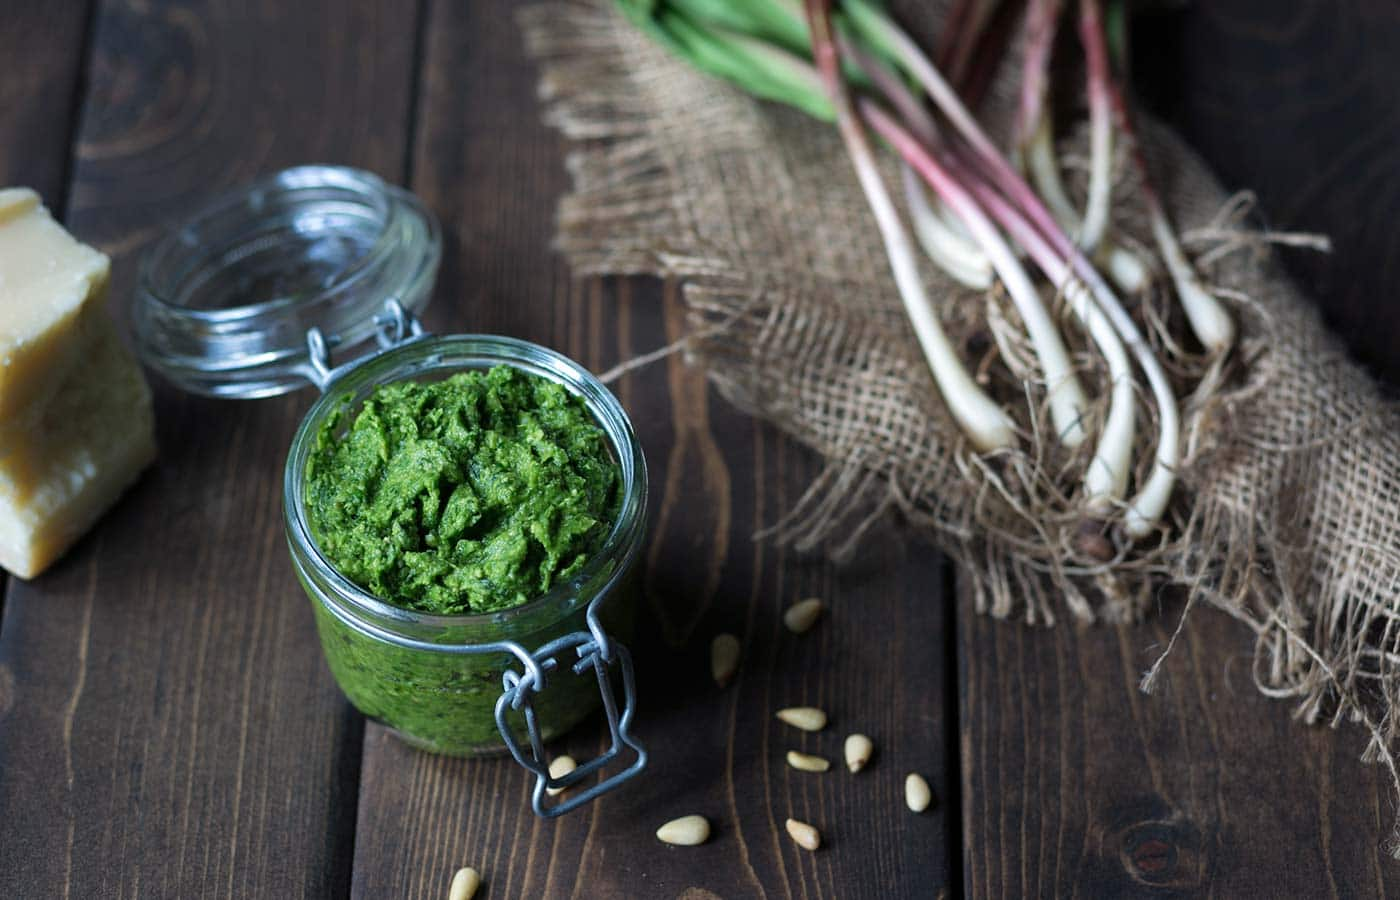 Ramp pesto in a jar (ramps food)